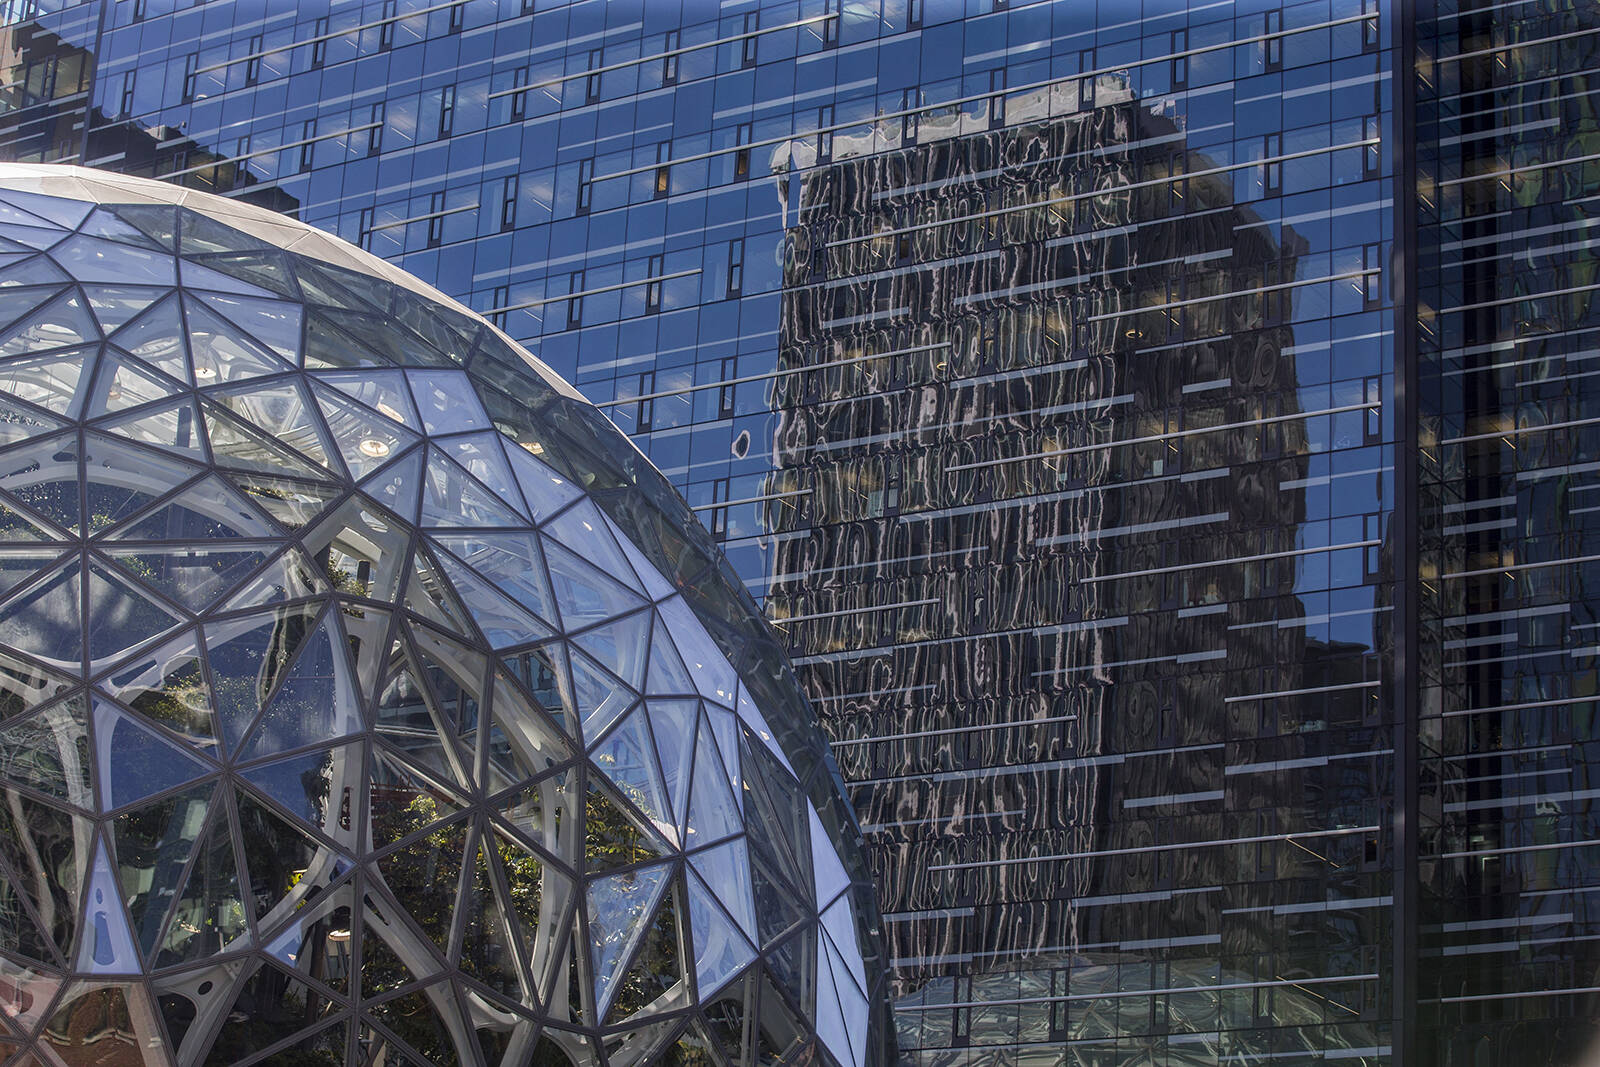 An Amazon tower is reflected in the Amazon Day 1 building above the Amazon Spheres in Seattle. Amanda Snyder | Seattle Times An Amazon tower is reflected in the Amazon Day 1 building above the Amazon Spheres in Seattle. Amanda Snyder | Seattle Times